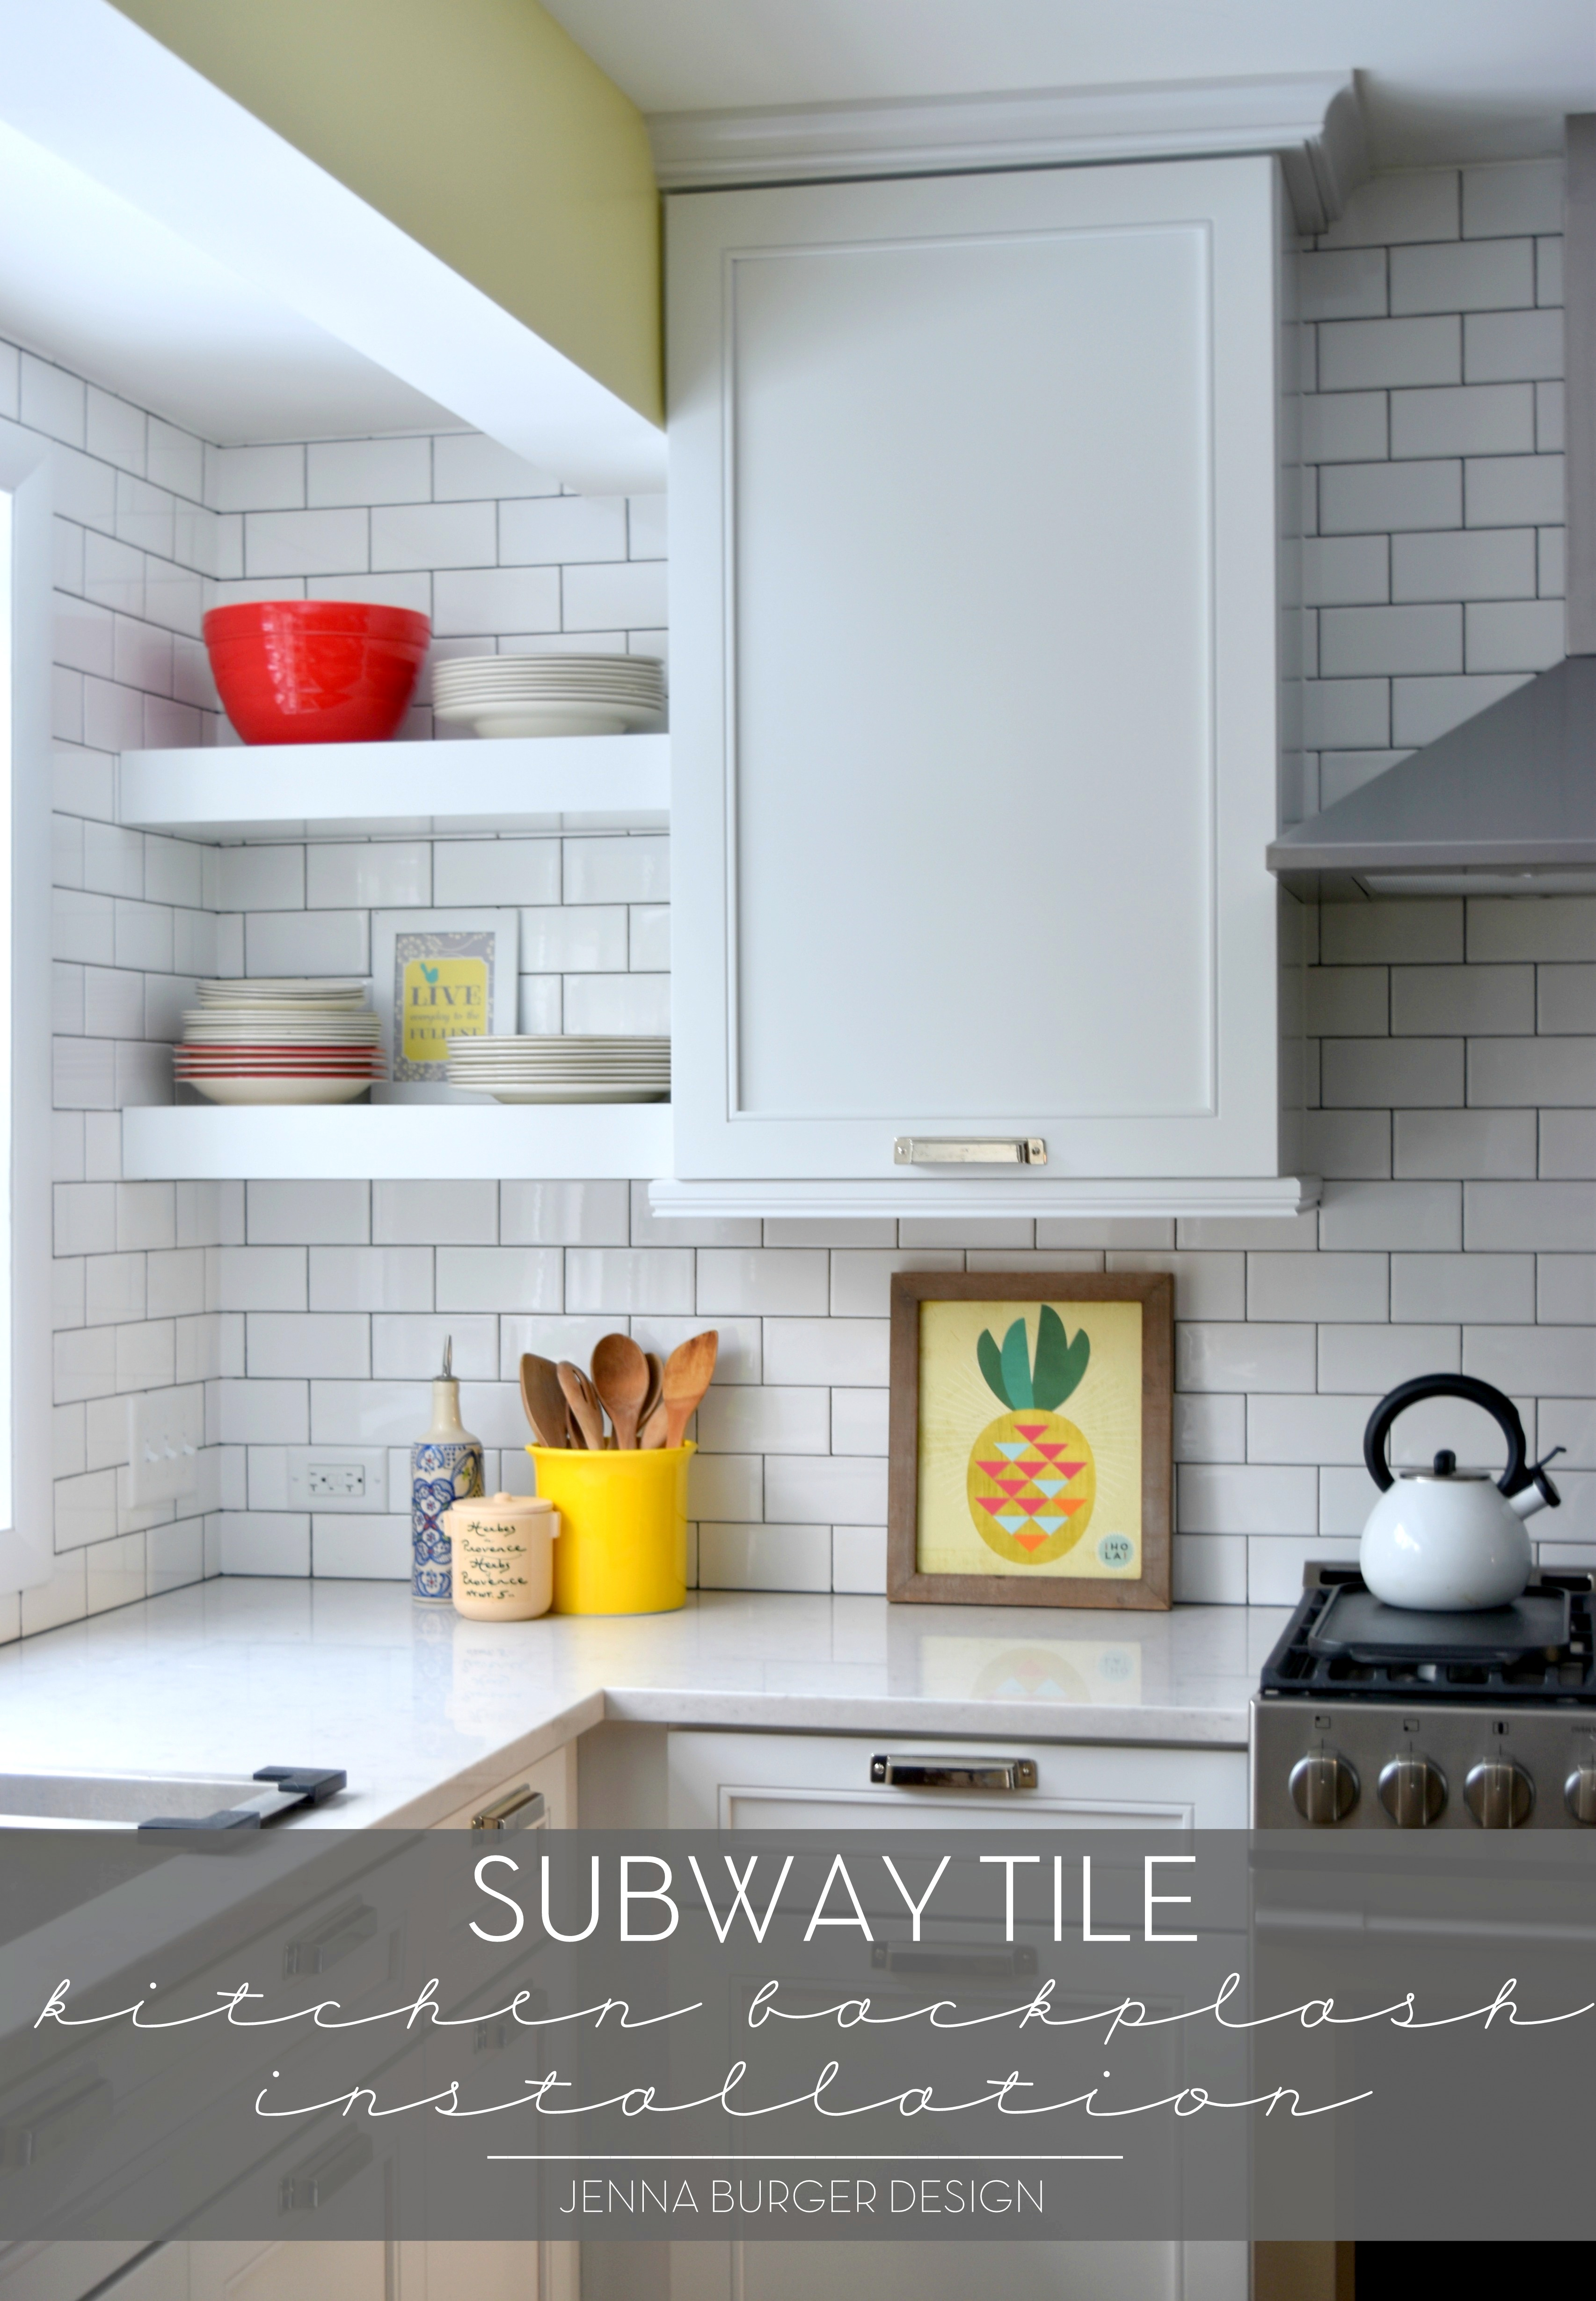 subway tiles in kitchen chairs for table tile backsplash installation jenna burger there are many styles colors how do you choose the right